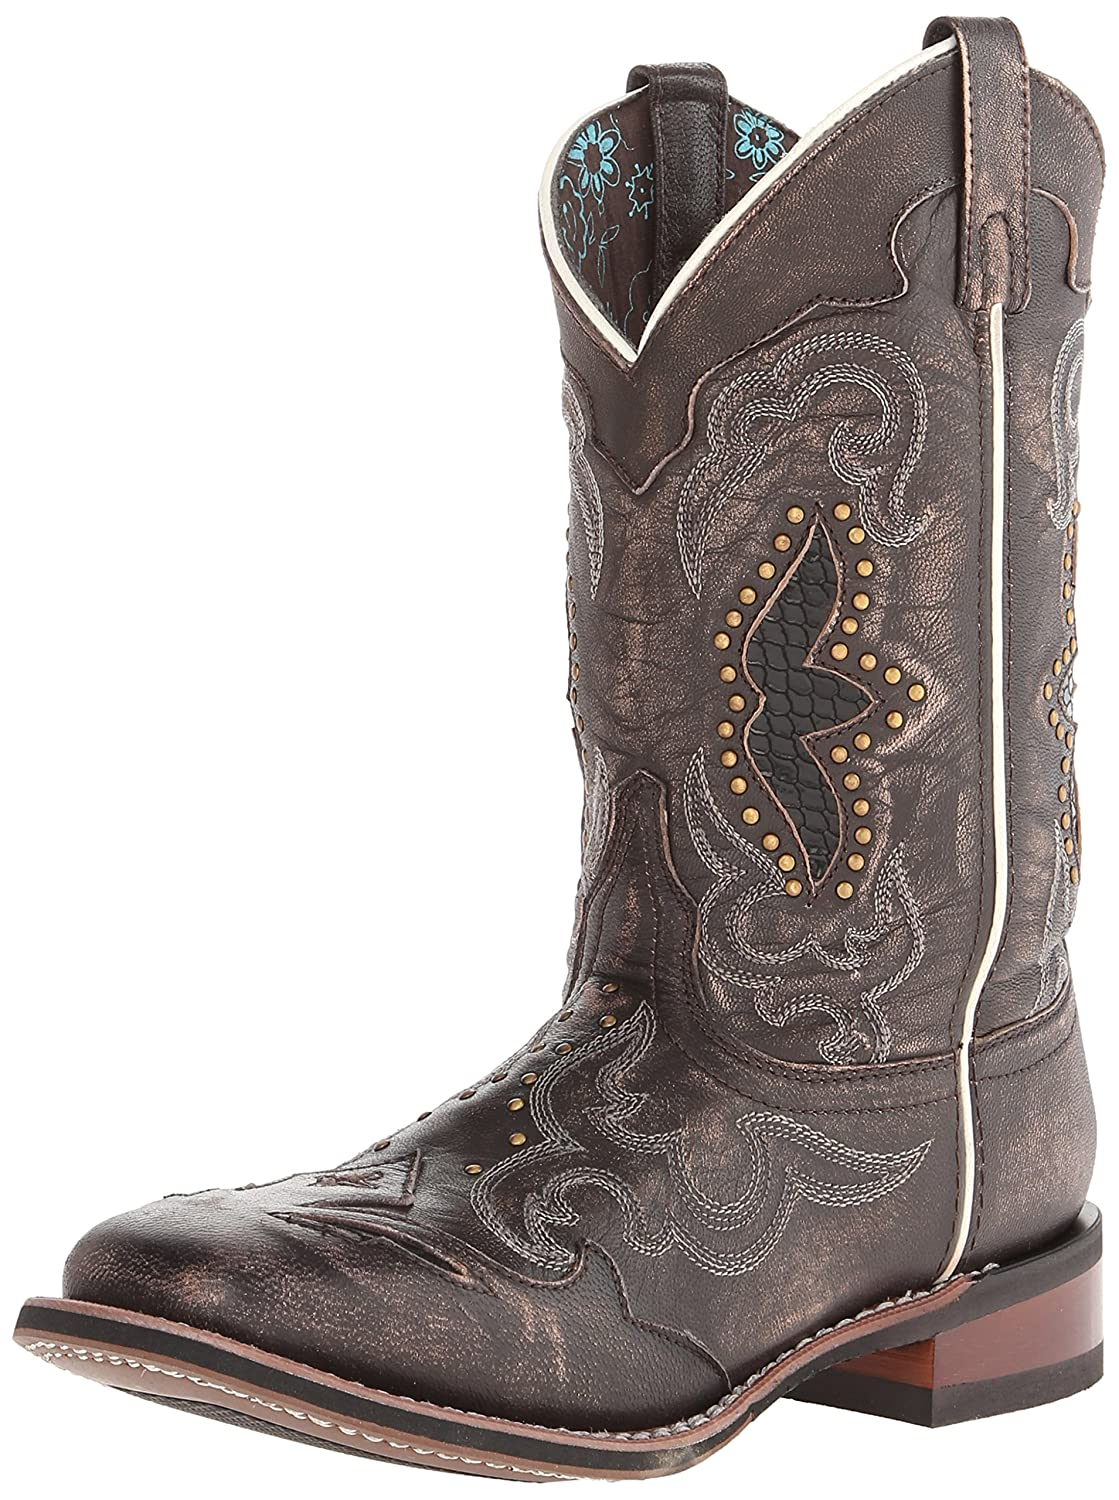 Laredo Women's Spellbound Western Boot B00ITCBERE 10 B(M) US|Black/Tan